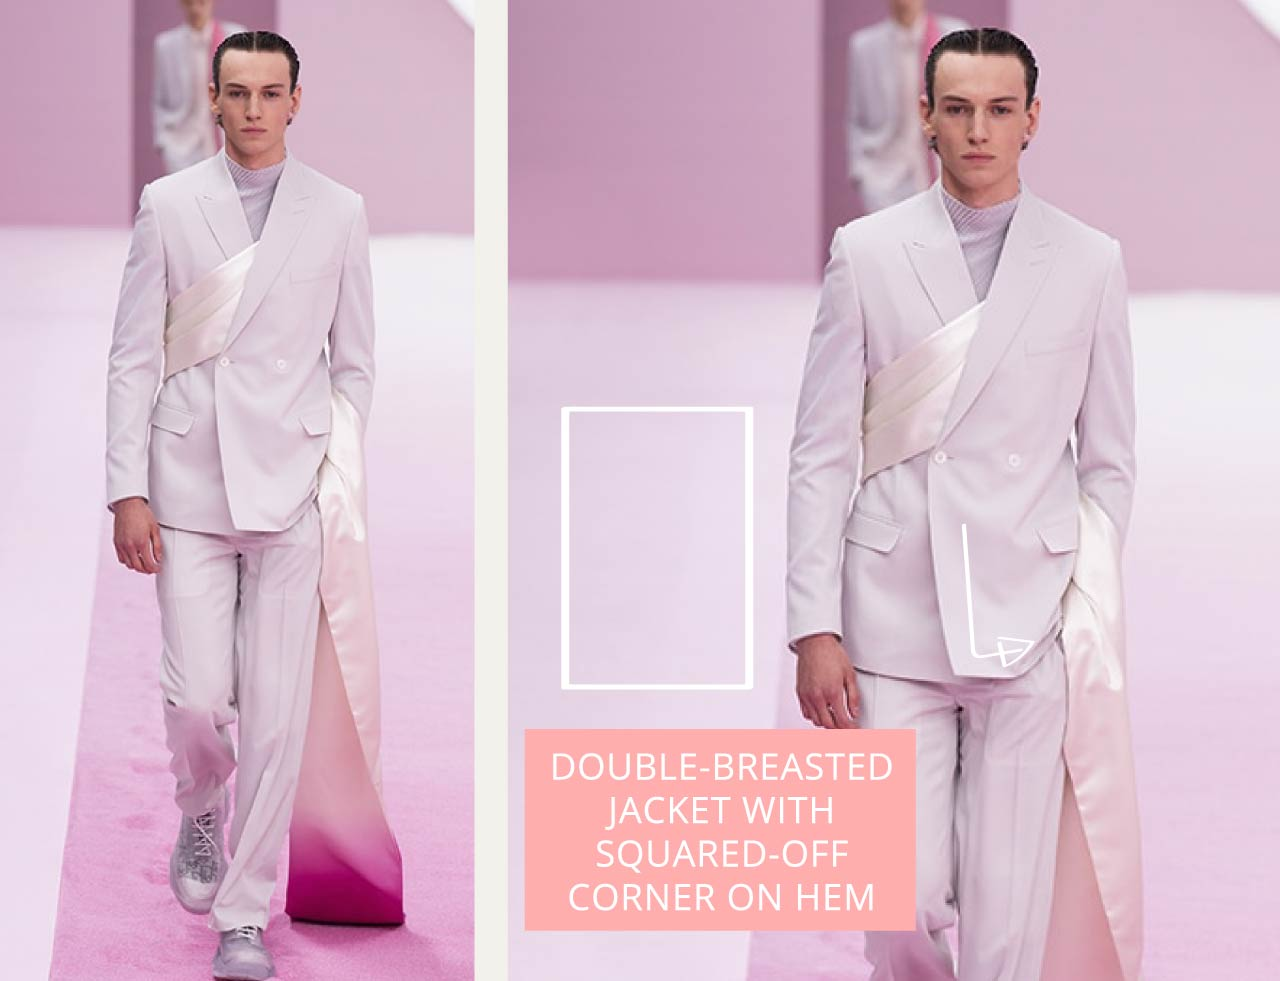 Tailored Jacket Hems - Straight or curved? | The Cutting Class. Dior Menswear SS20. Double-breasted jacket with sash detail from creative director Kim Jones.